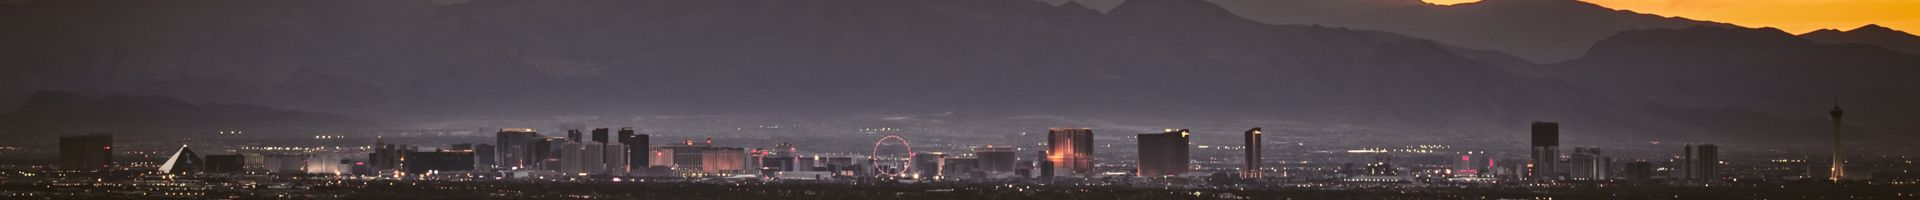 The Las Vegas Strip skyline seen at sunset with mountains deep in the background.